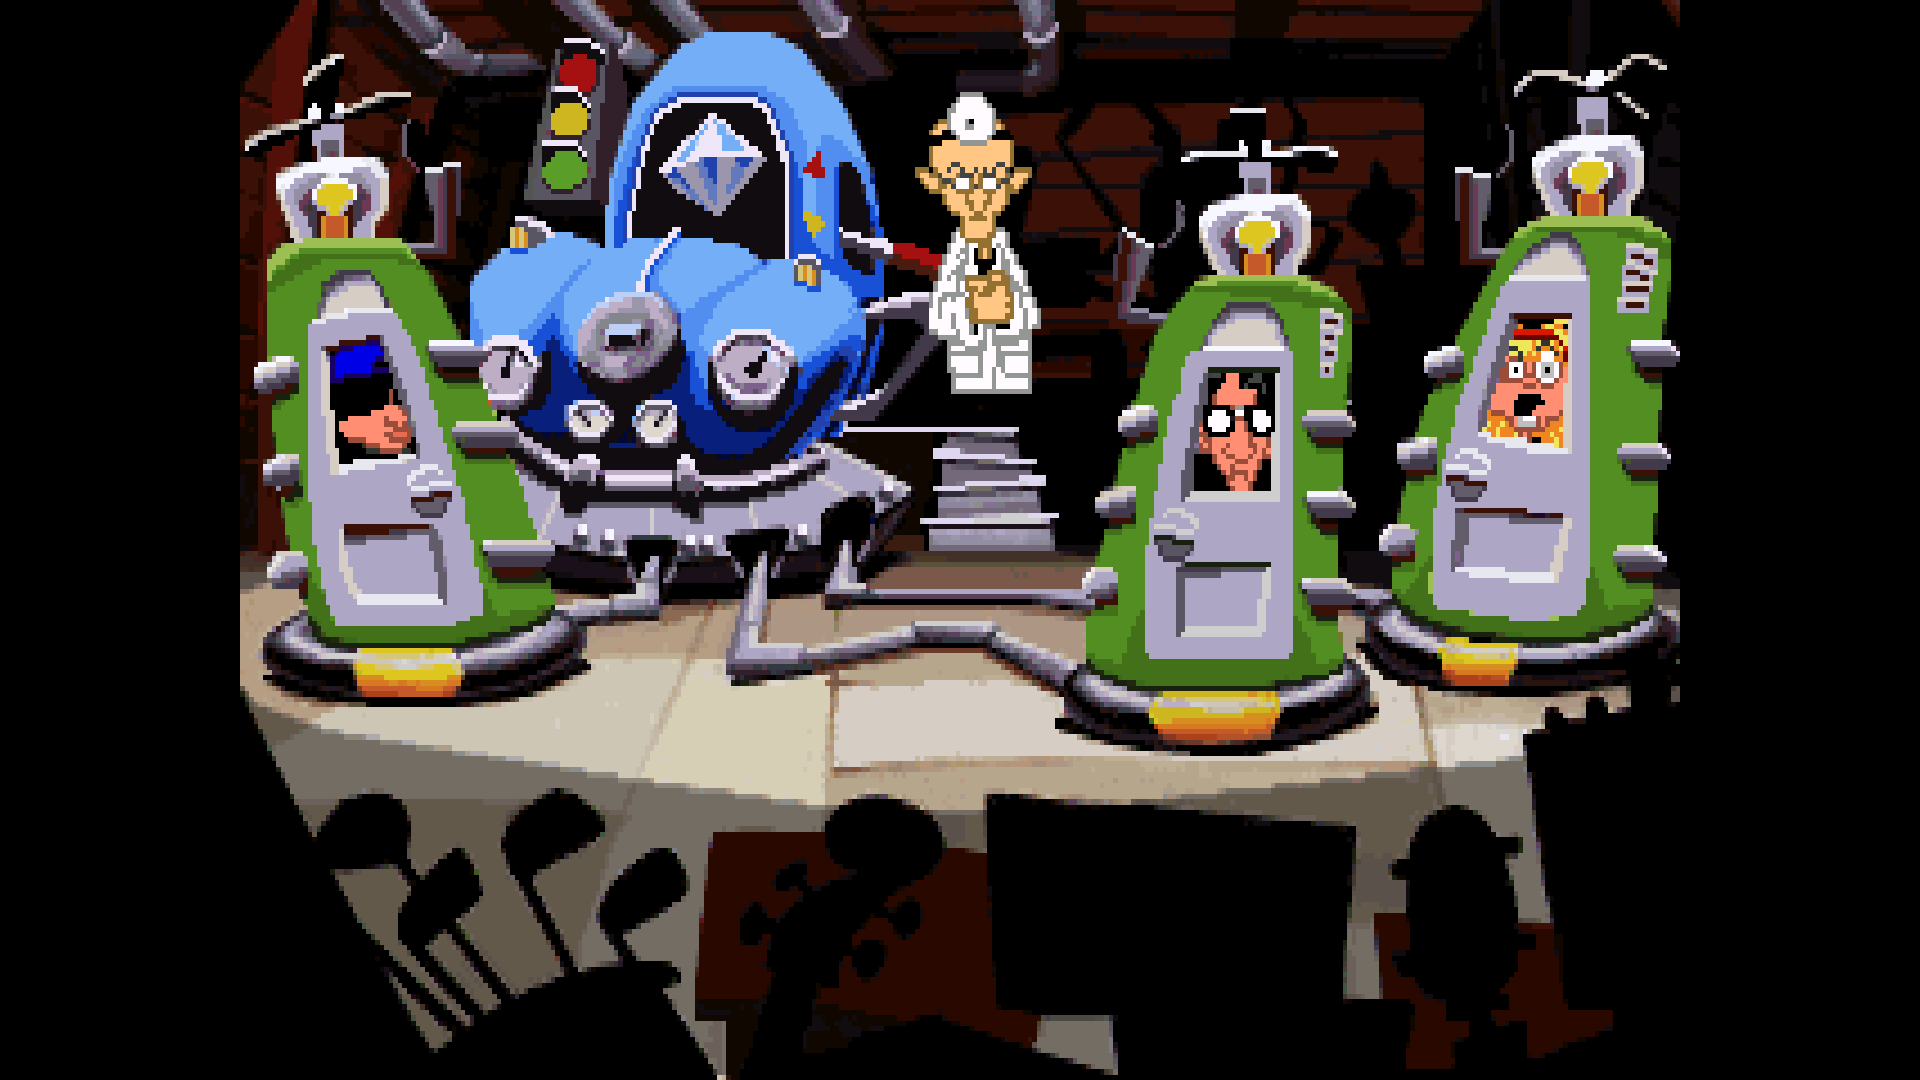 Day of the Tentacle Remastered: eine Szene aus dem Original (Bildrechte: Double Fine Productions)